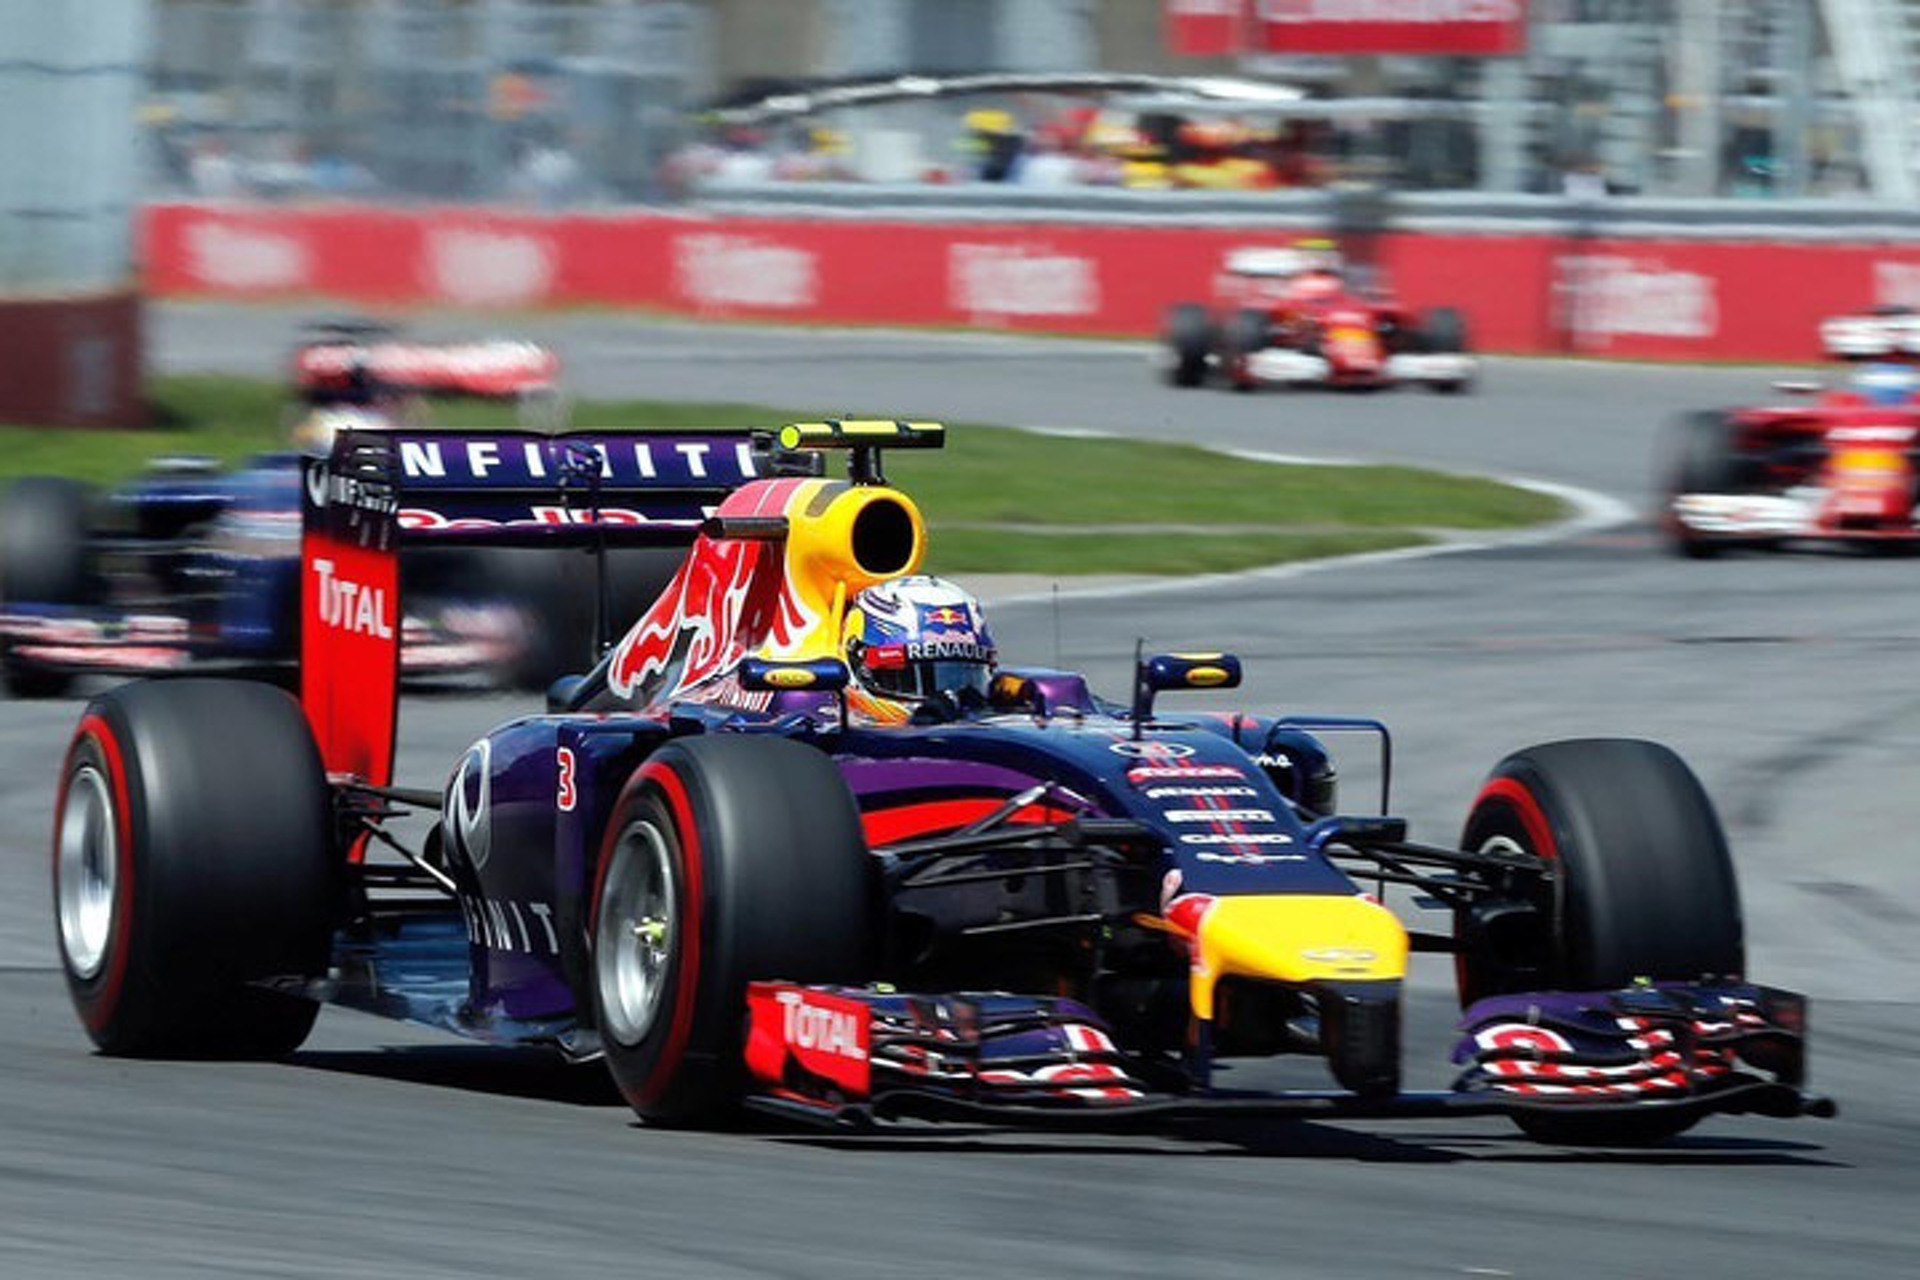 Daniel Ricciardo Claims First F1 Win at Action-Packed Canadian Grand Prix